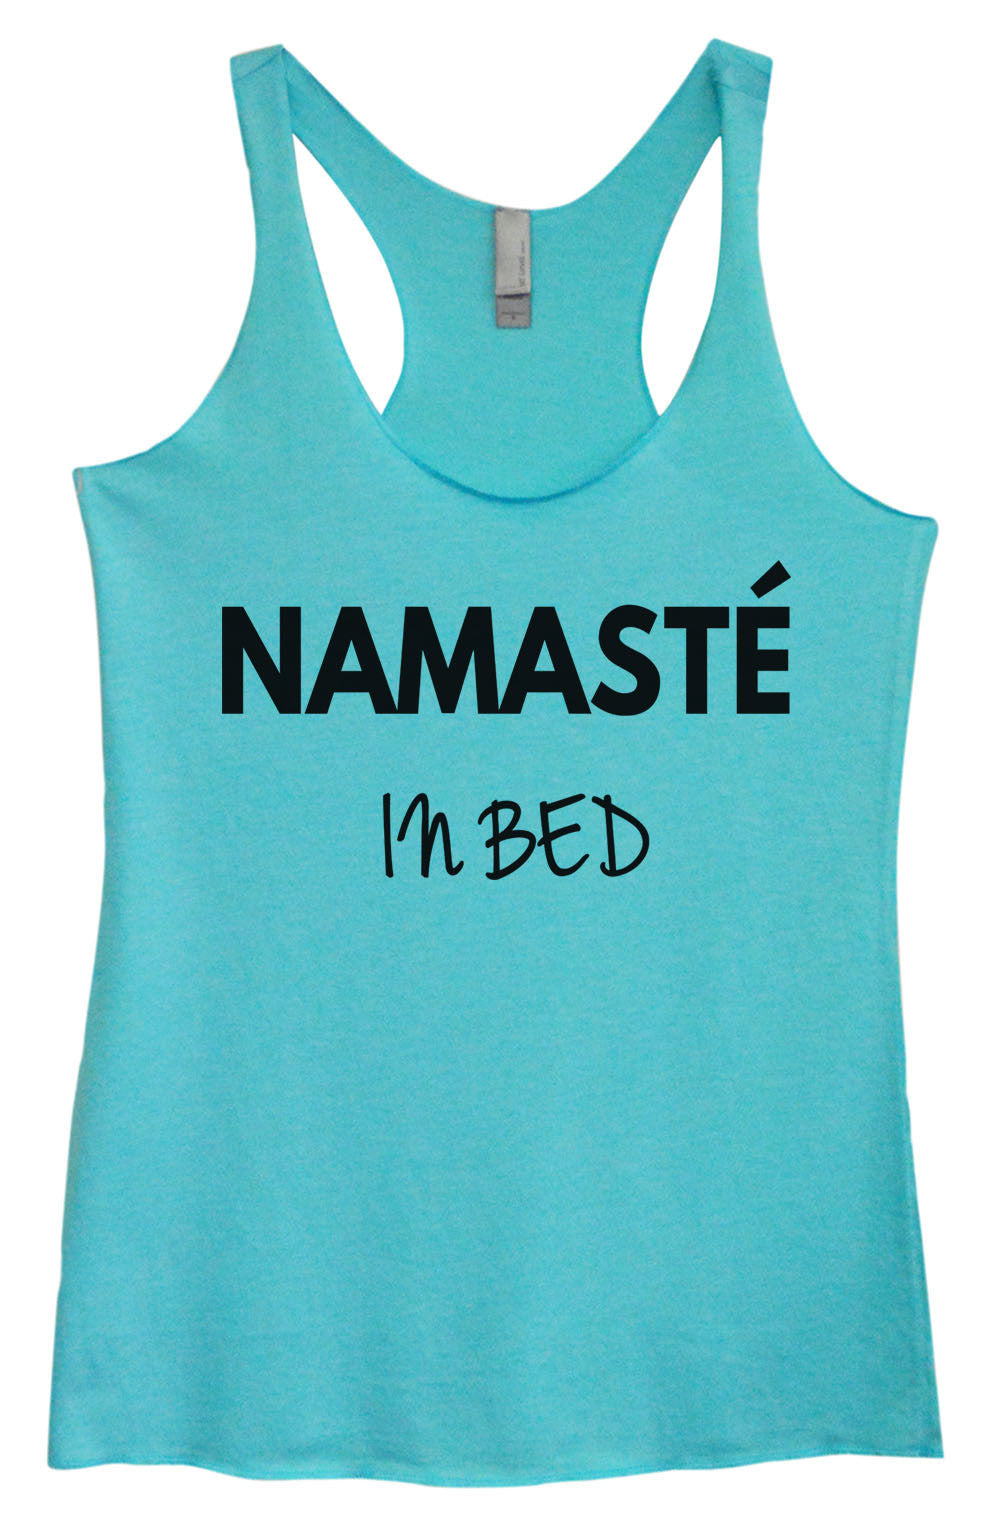 Womens Fashion Triblend Tank Top - Namaste In Bed - Tri-647 - Funny Shirts Tank Tops Burnouts and Triblends  - 1